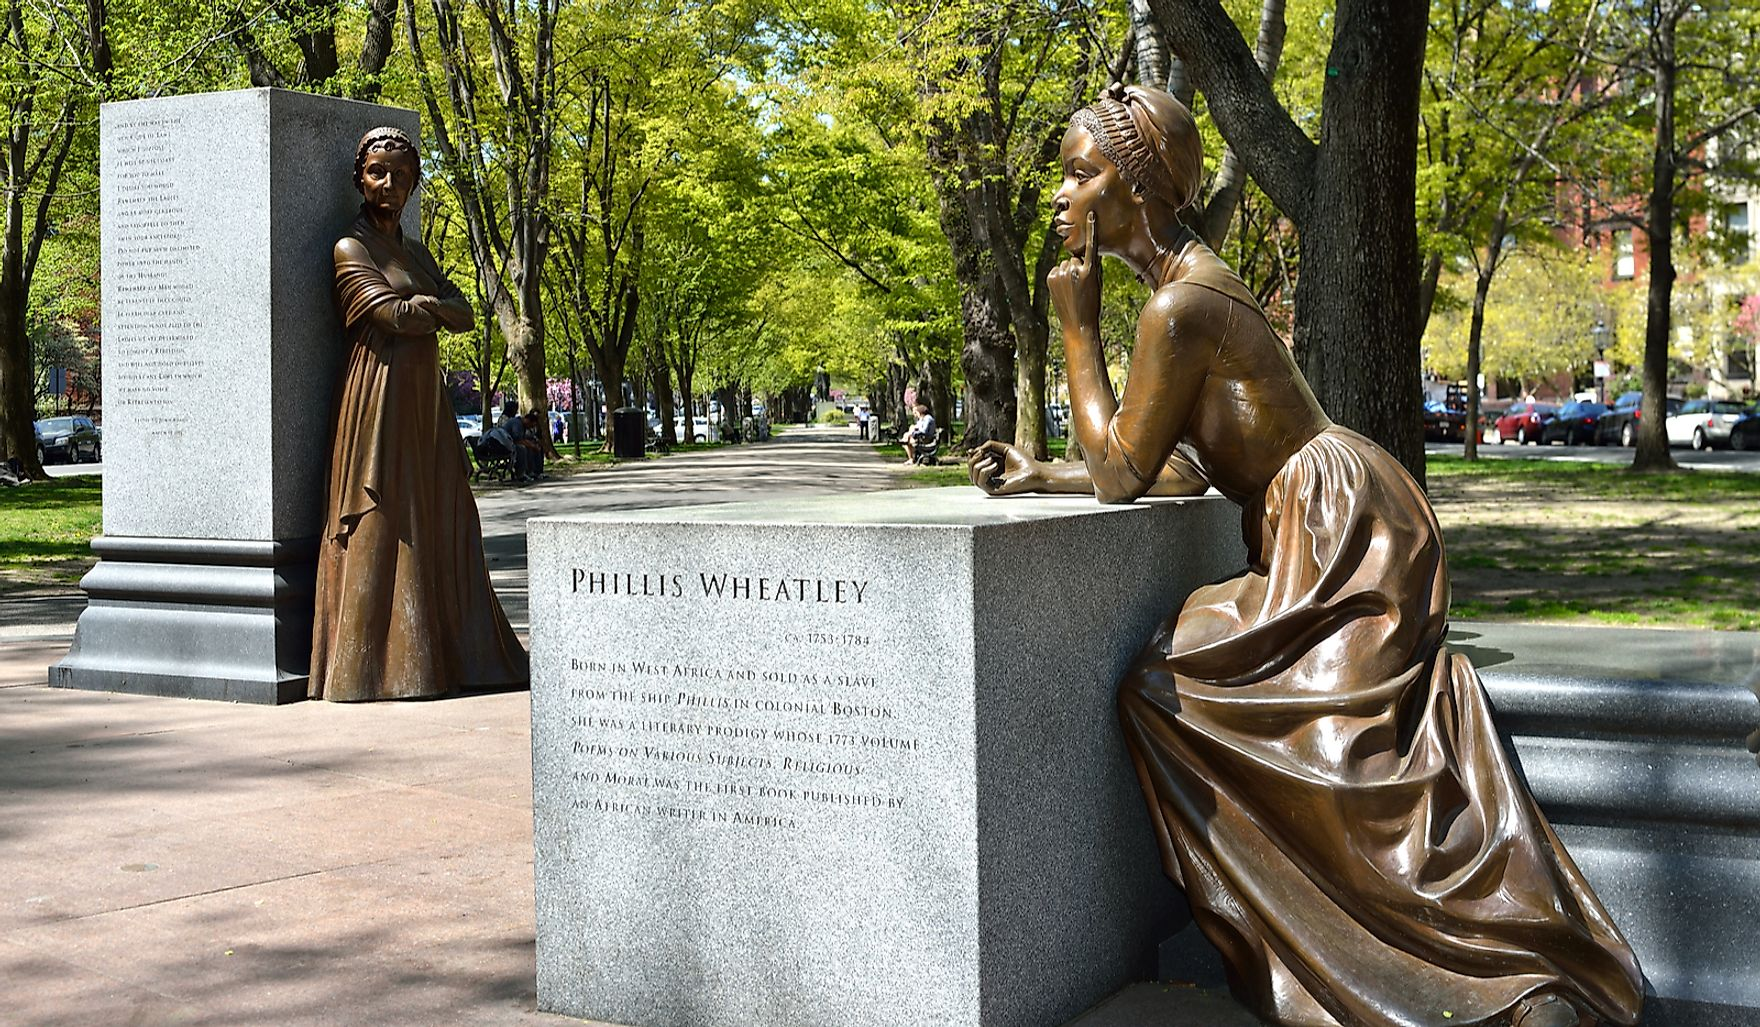 Phillis Wheatley and Abigail Adams at the Boston Women's Memorial in Back Bay, Boston, a monument celebrating women's history in the USA. Editorial credit: Jorge Salcedo / Shutterstock.com